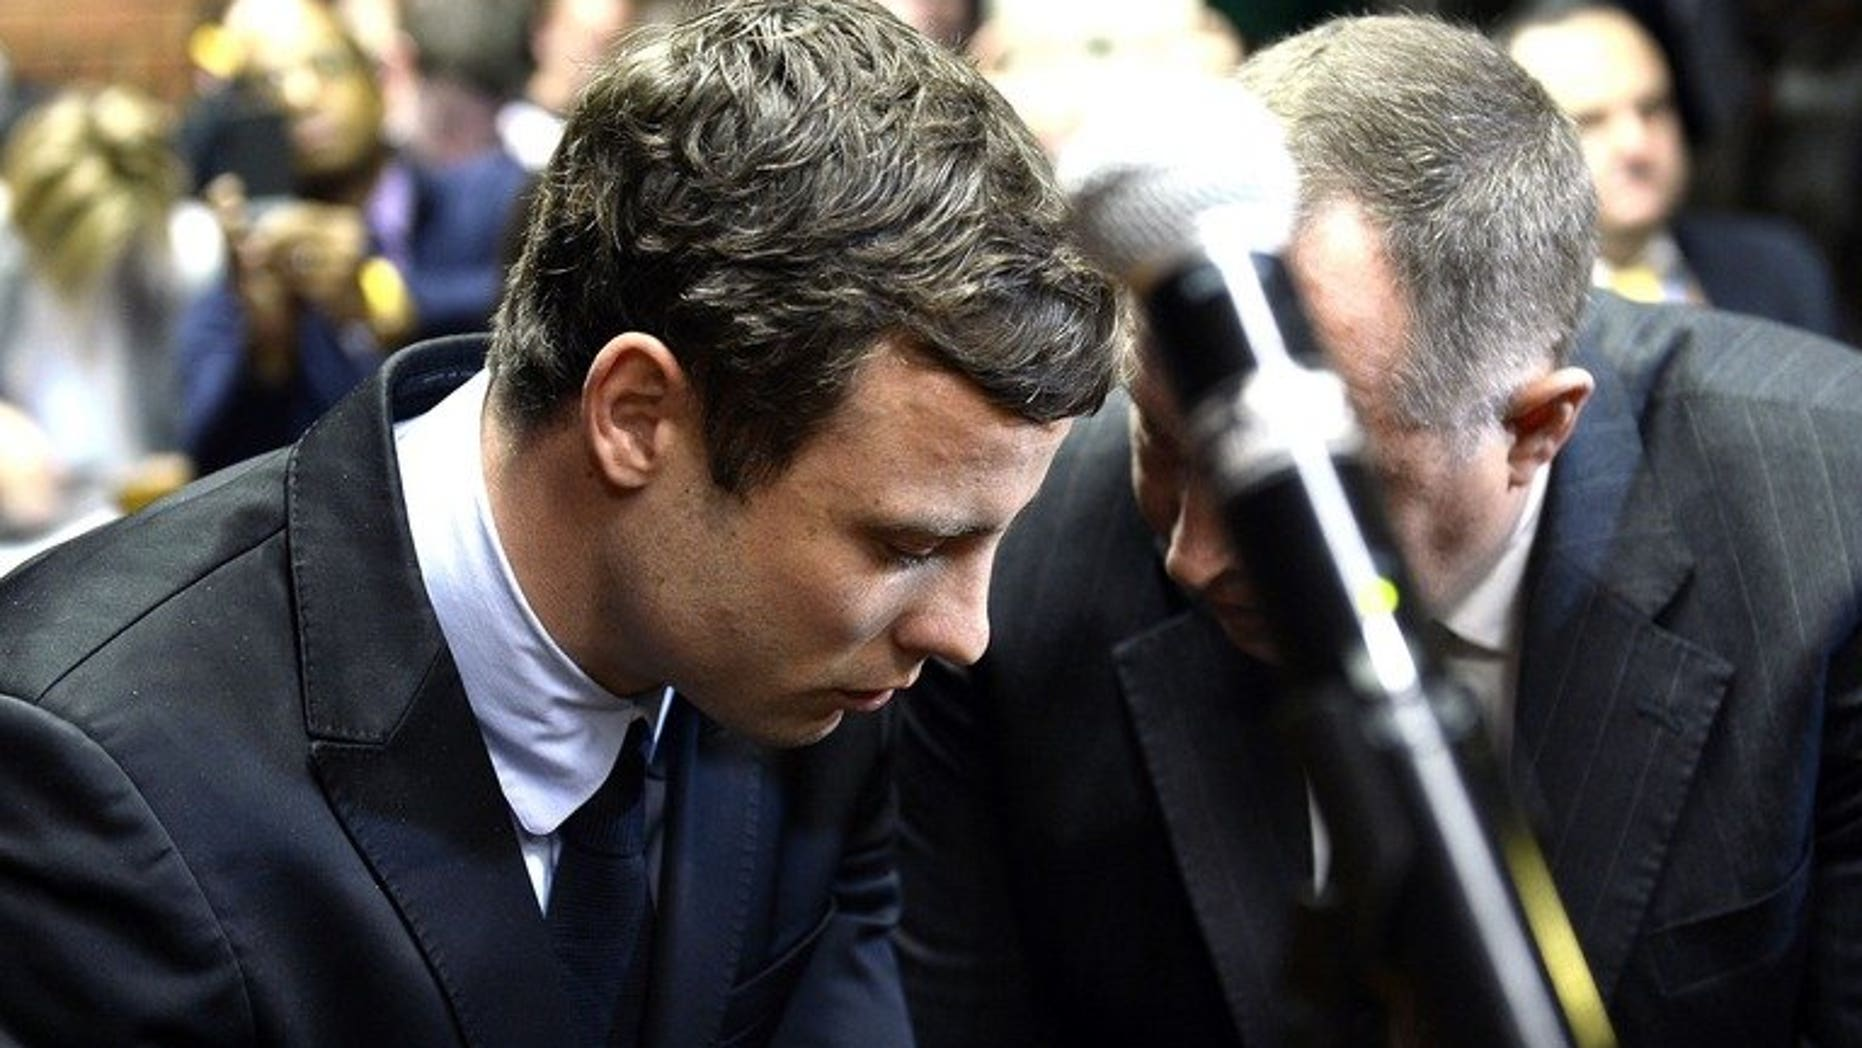 Oscar Pistorius (L) appears at Pretoria Magistrate's Court on August 19, 2013. South Africa's Paralympic sprint star has launched a bid to negotiate an out-of-court deal to pay damages to the parents of his lover whom he killed on Valentine's Day, a local newspaper says.